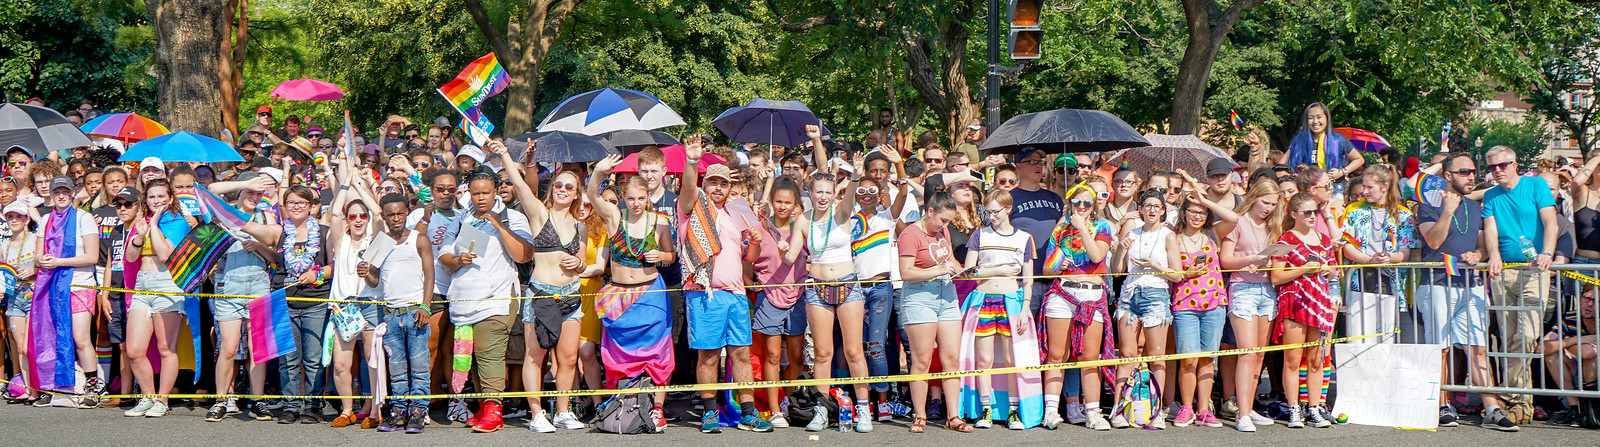 2018.06.09 Capital Pride Parade, Washington, DC USA 03117